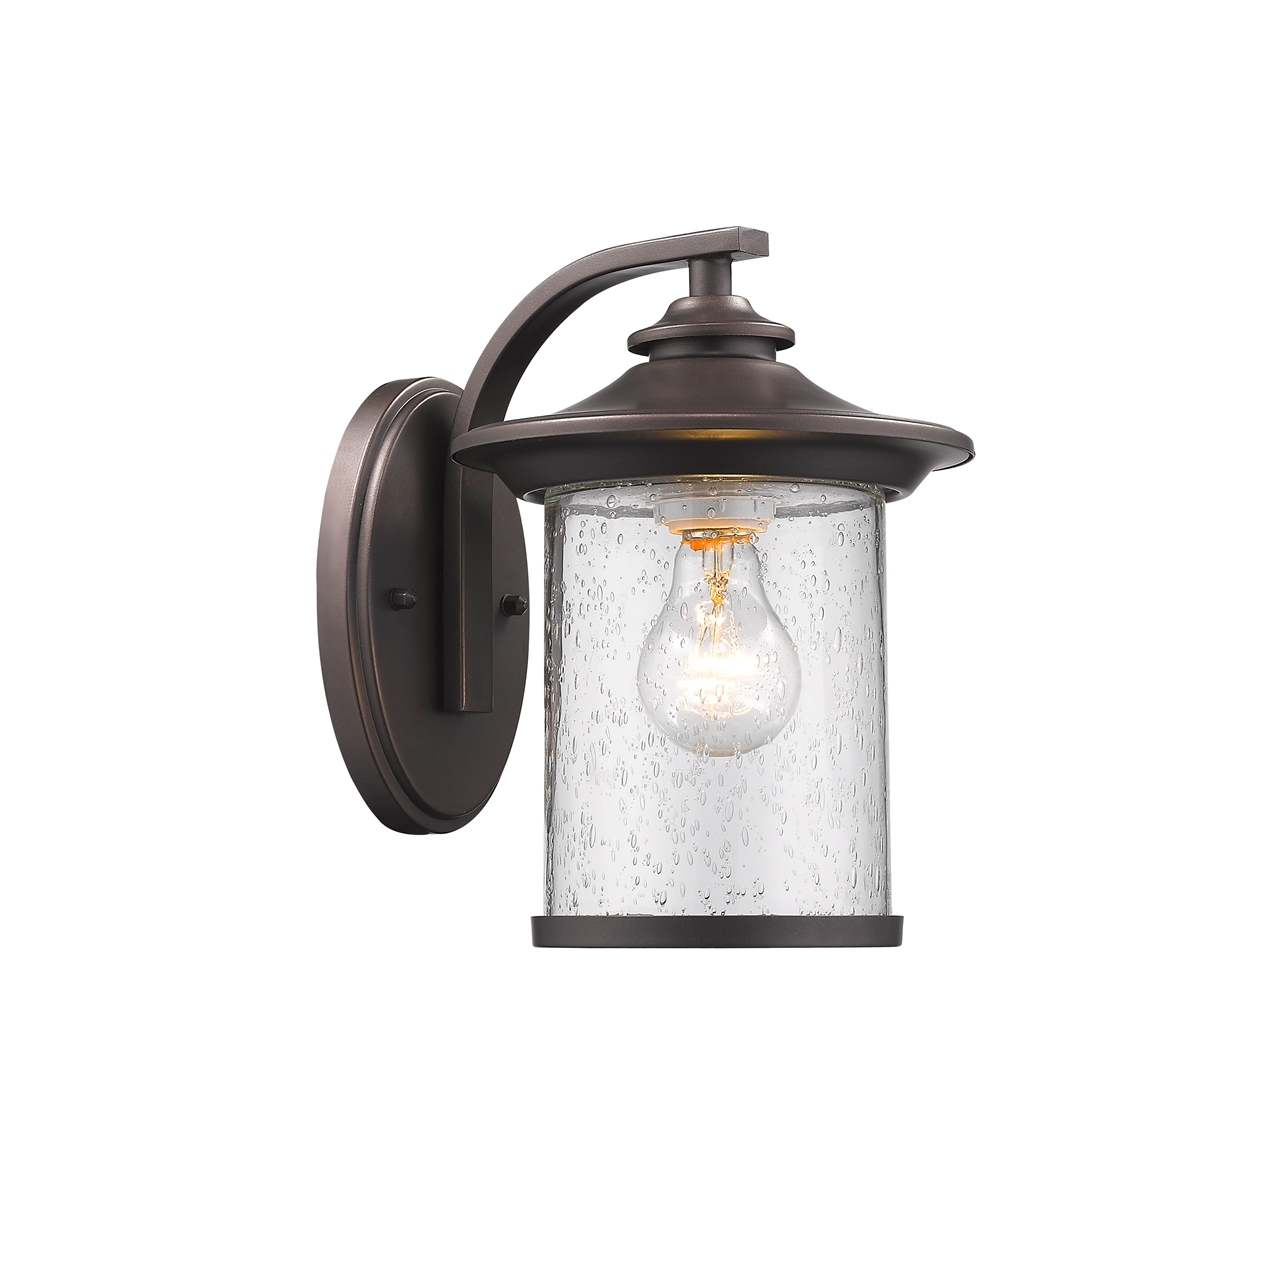 Exterior Wall Sconce Mounting Height : CHLOE Lighting, Inc Lighting wholesale, Lighting wholesalers, Lighting Fixture Wholesale ...